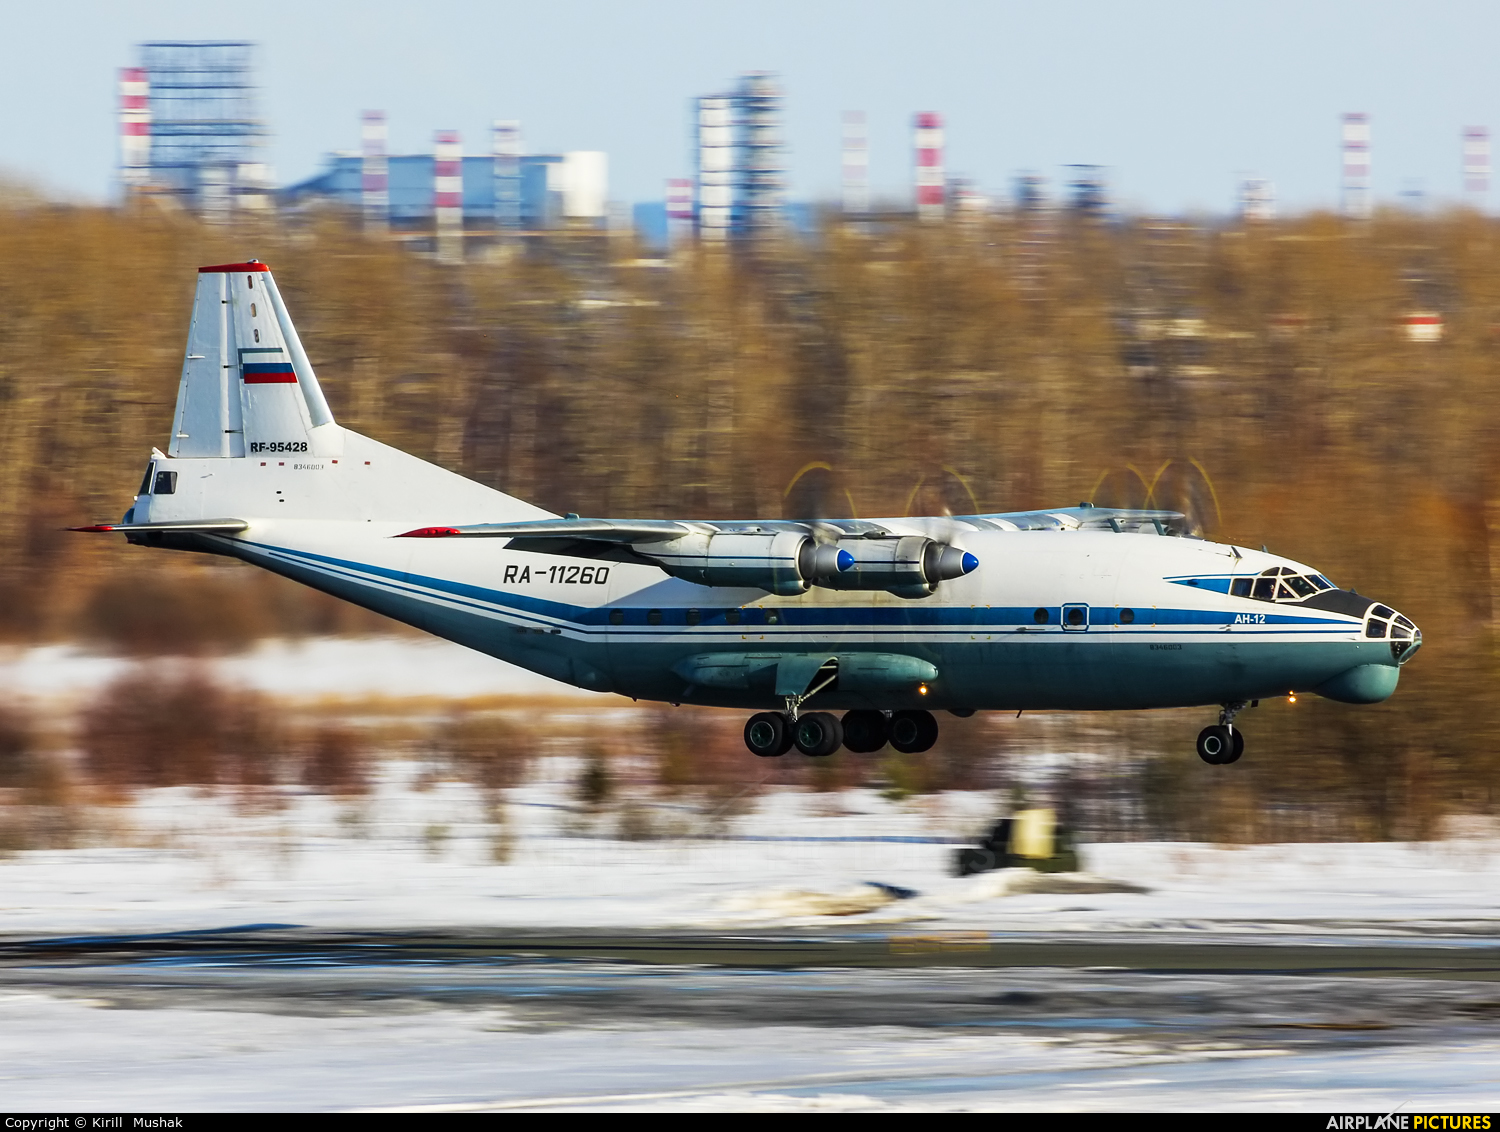 Russia - Air Force RA-11260 aircraft at Undisclosed Location